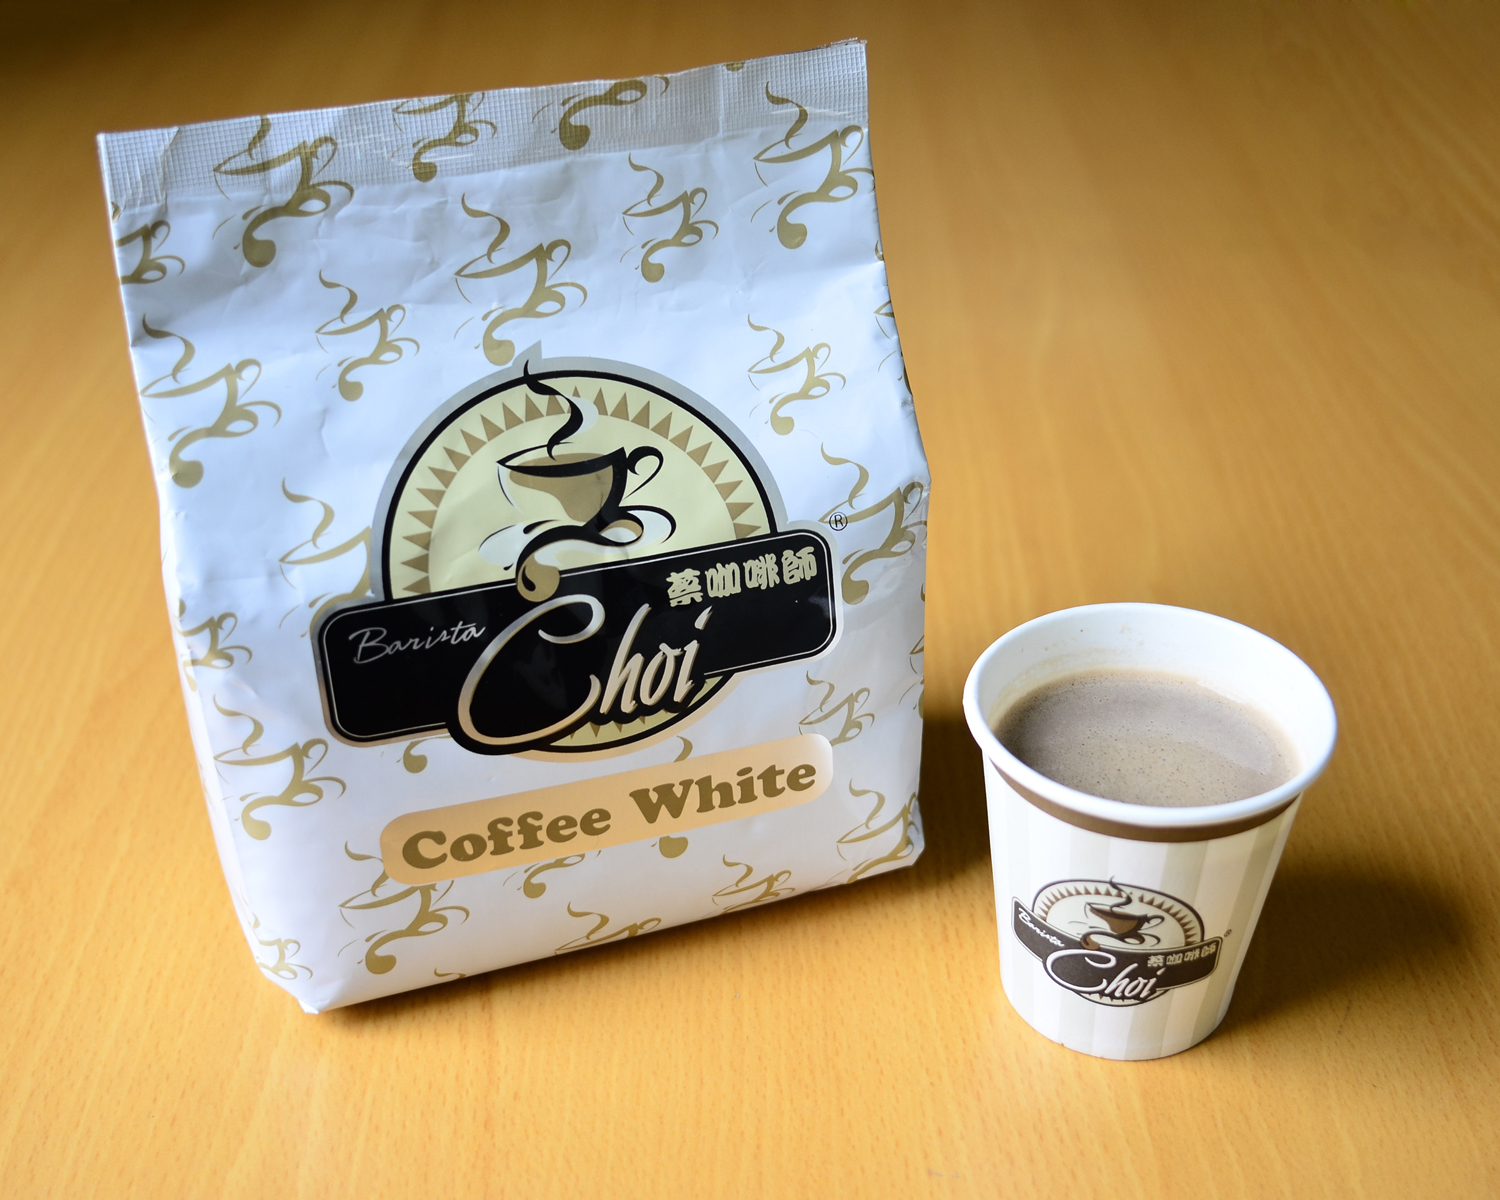 Coffee white